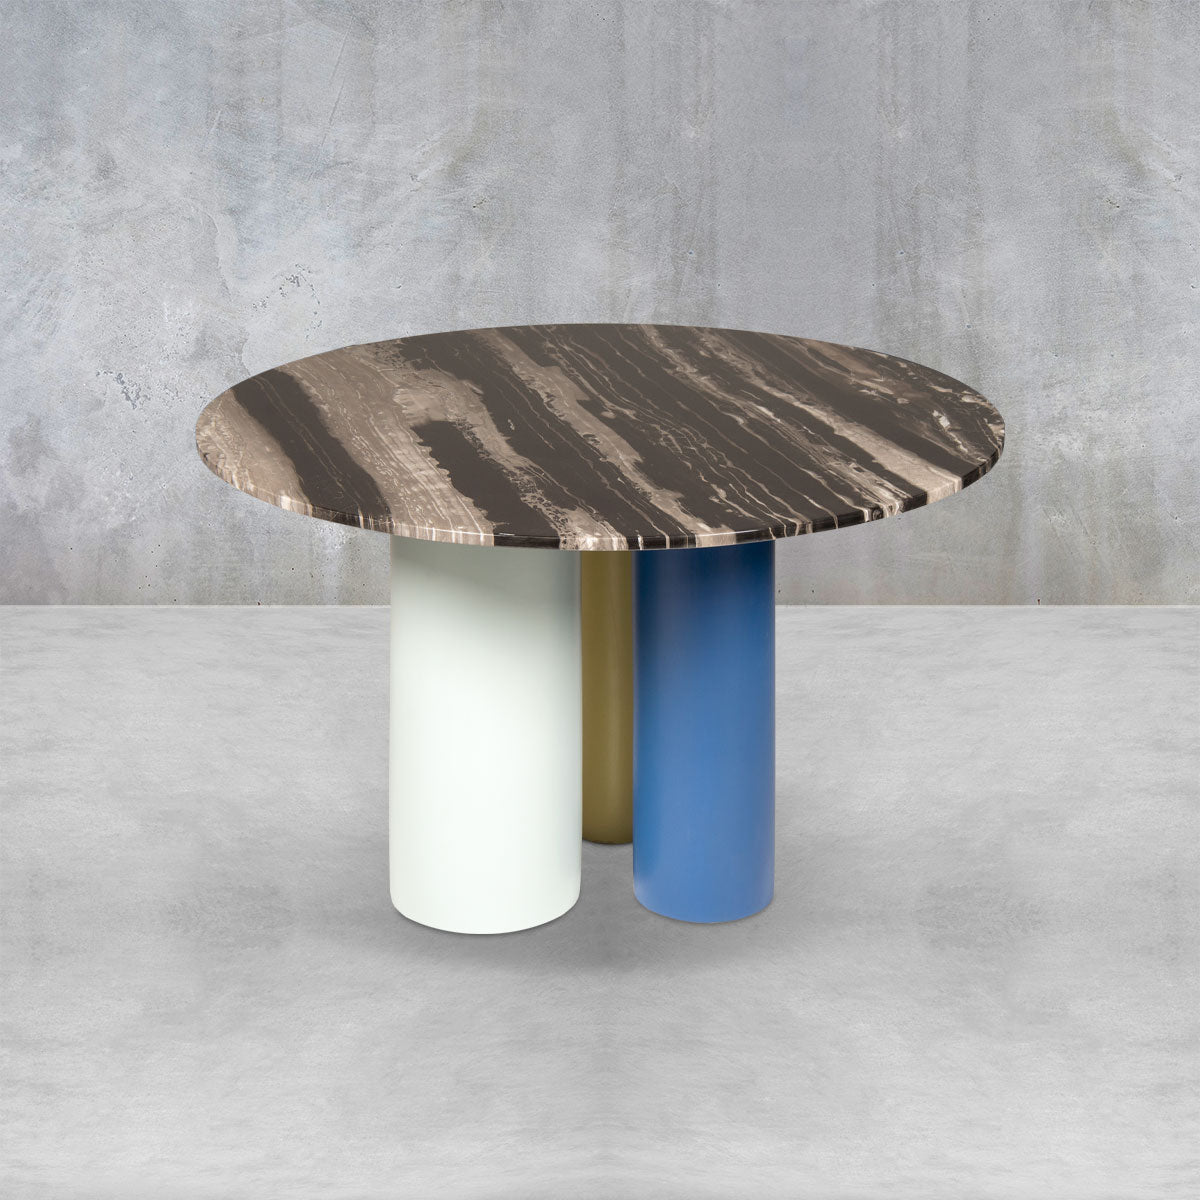 Round dining table with a dark distressed wood top and three large support columns in white, blue and yellow.